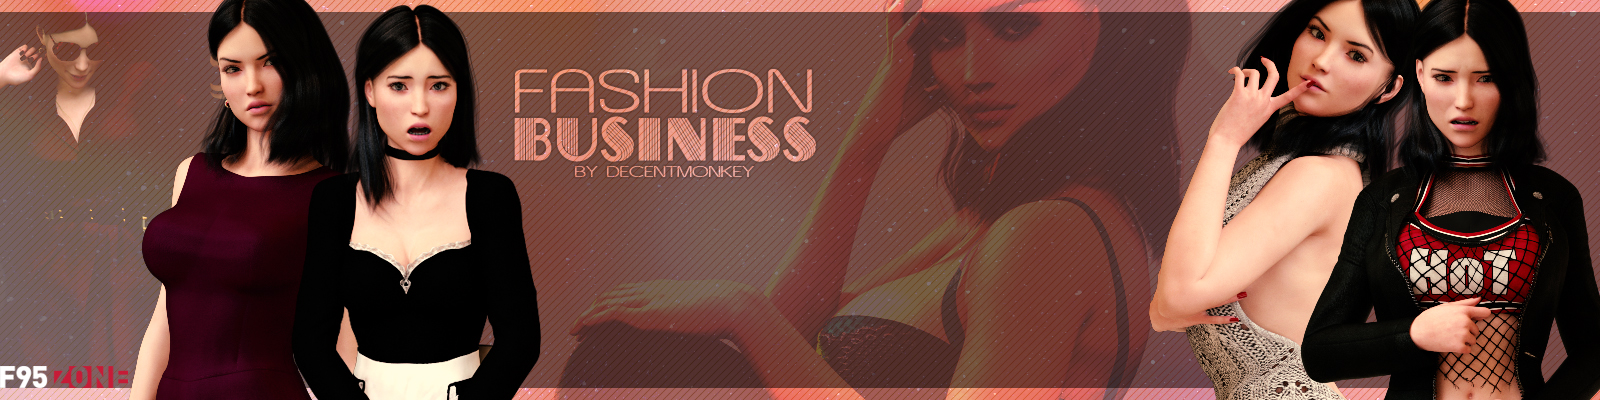 Fashion Business poster